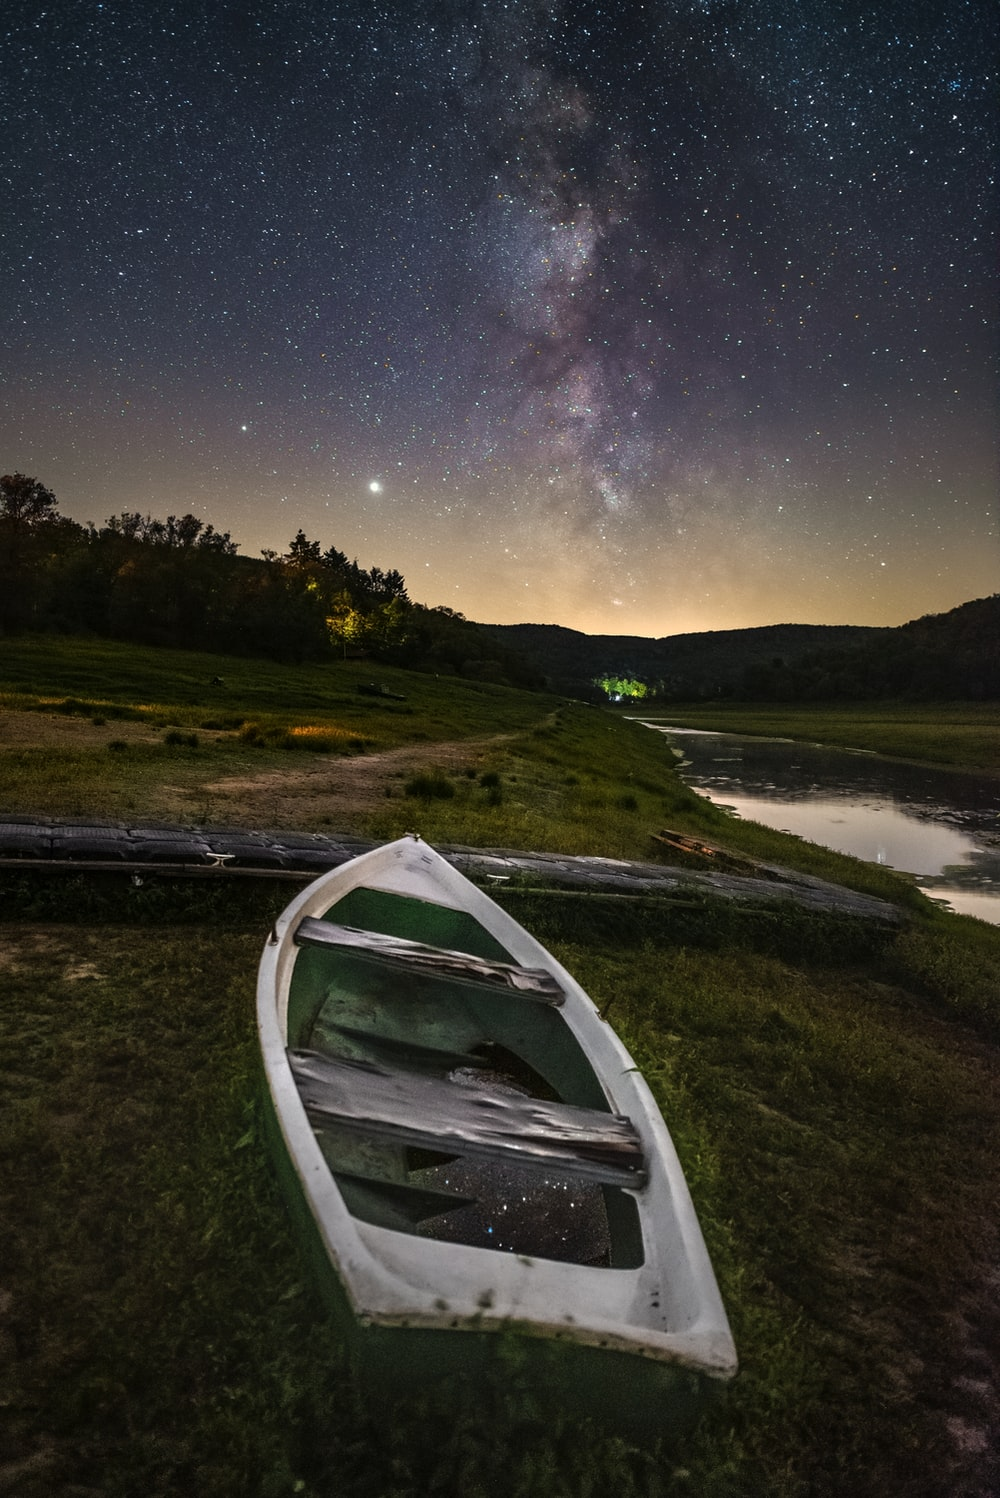 white canoe on green grass field near lake during night time